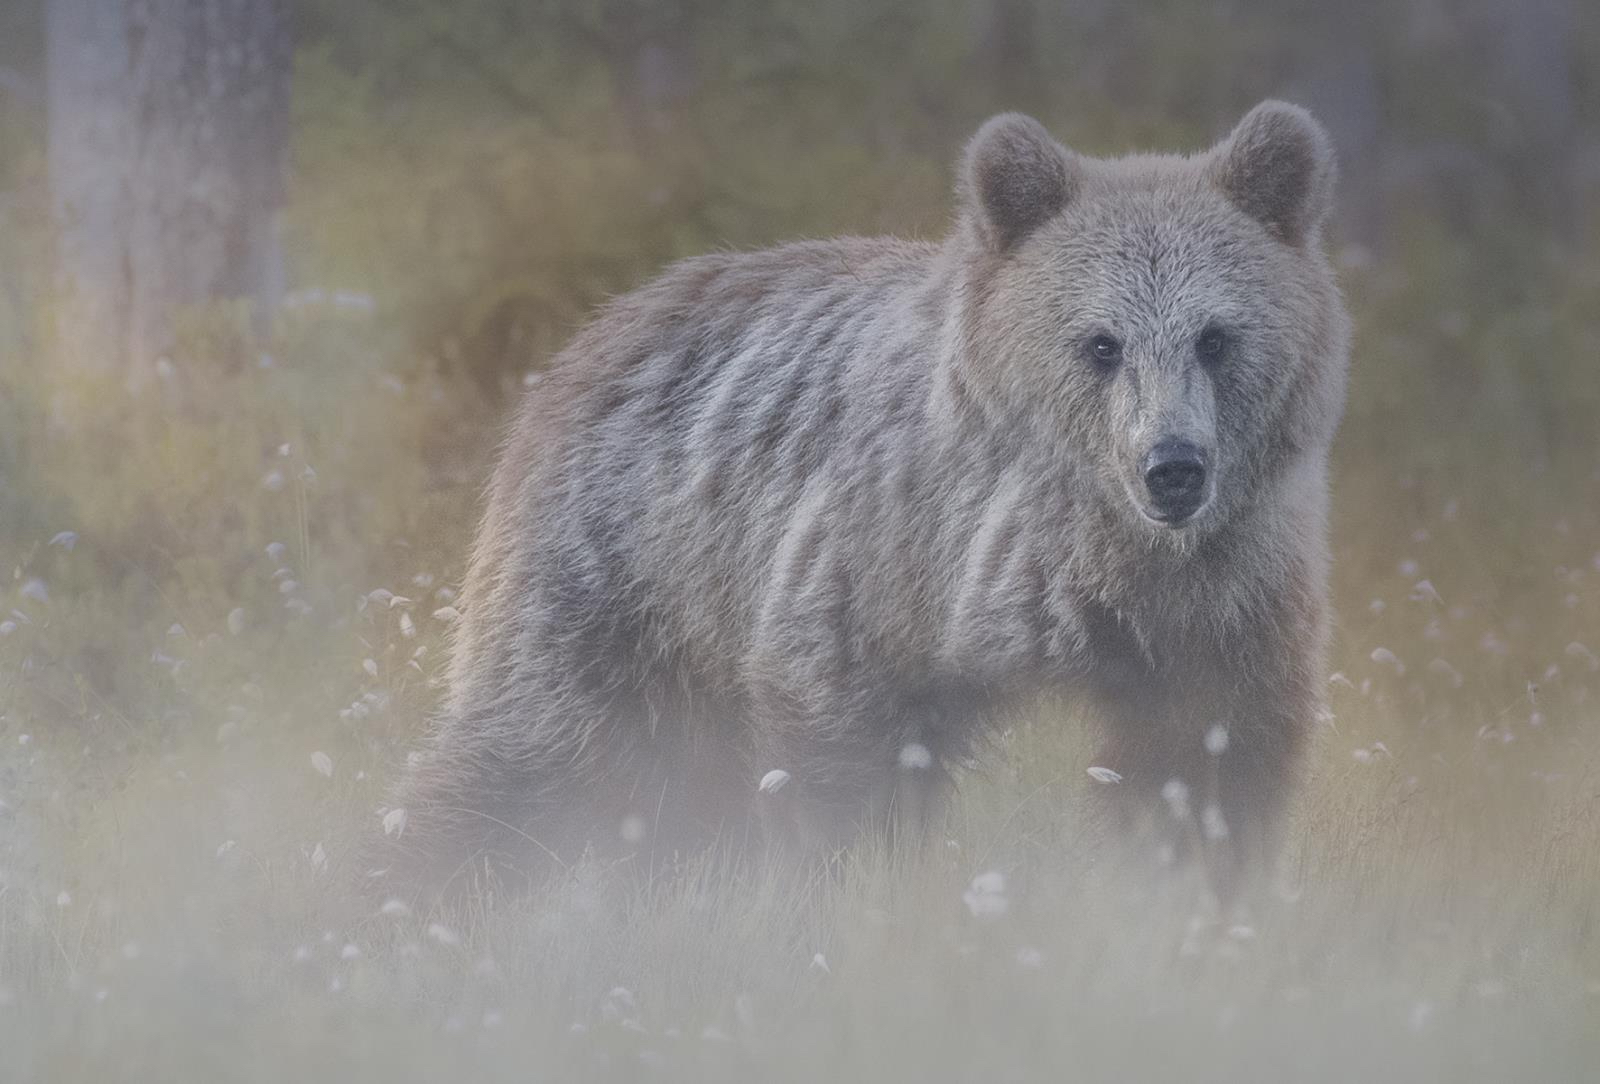 <h5>Wild bear in the mist</h5><p>By Claire Norman</p>